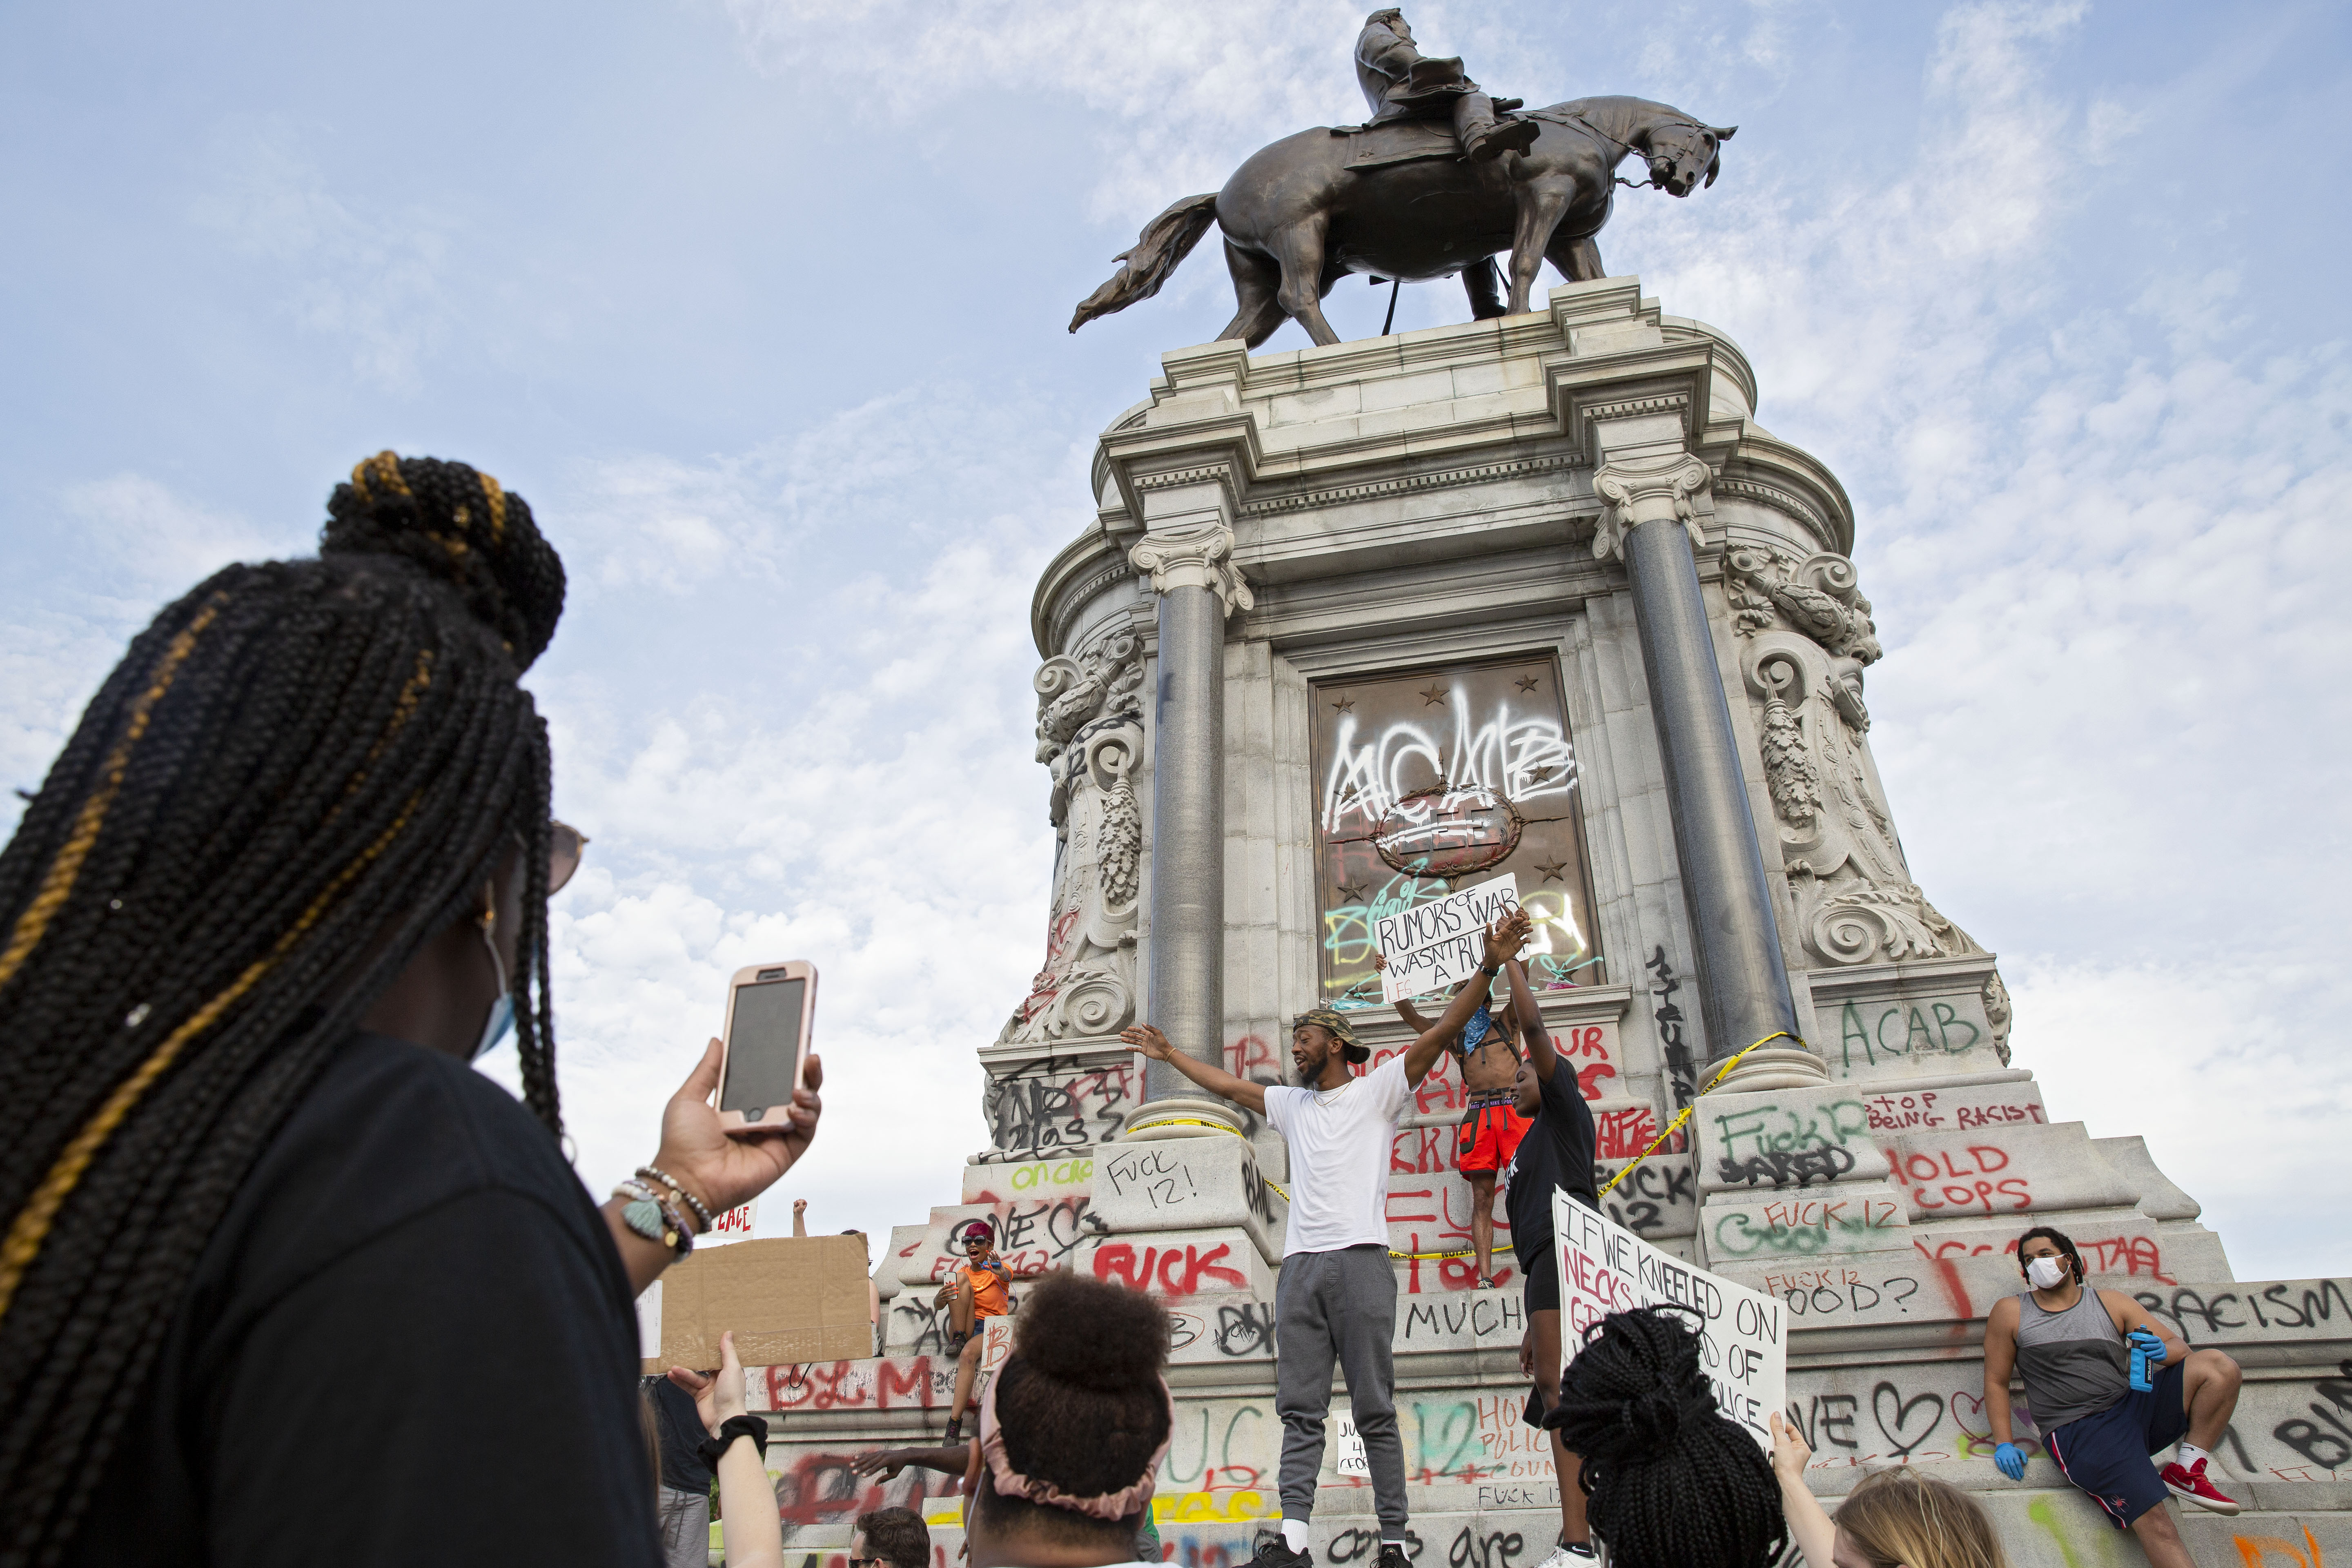 People gather around the Robert E. Lee statue on Monument Avenue in Richmond, Virginia, on June 4, 2020, amid continued protests over the death of George Floyd in police custody. - (Photo by RYAN M. KELLY/AFP via Getty Images)